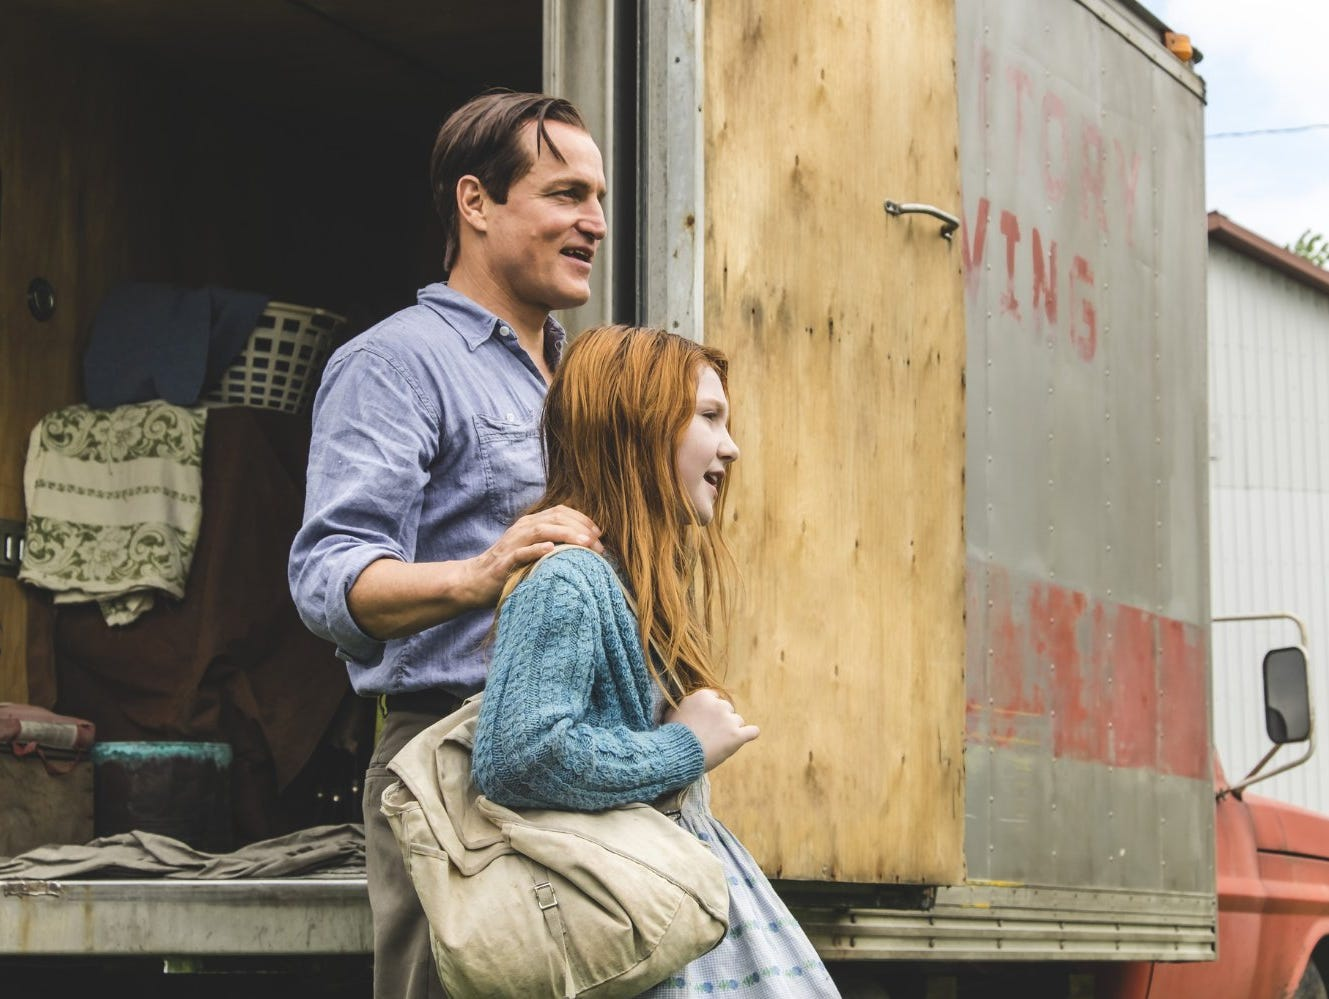 Opening in Aug. is the new Lionsgate film THE GLASS CASTLE based upon a true story. Enter to win 7/17-8/2!